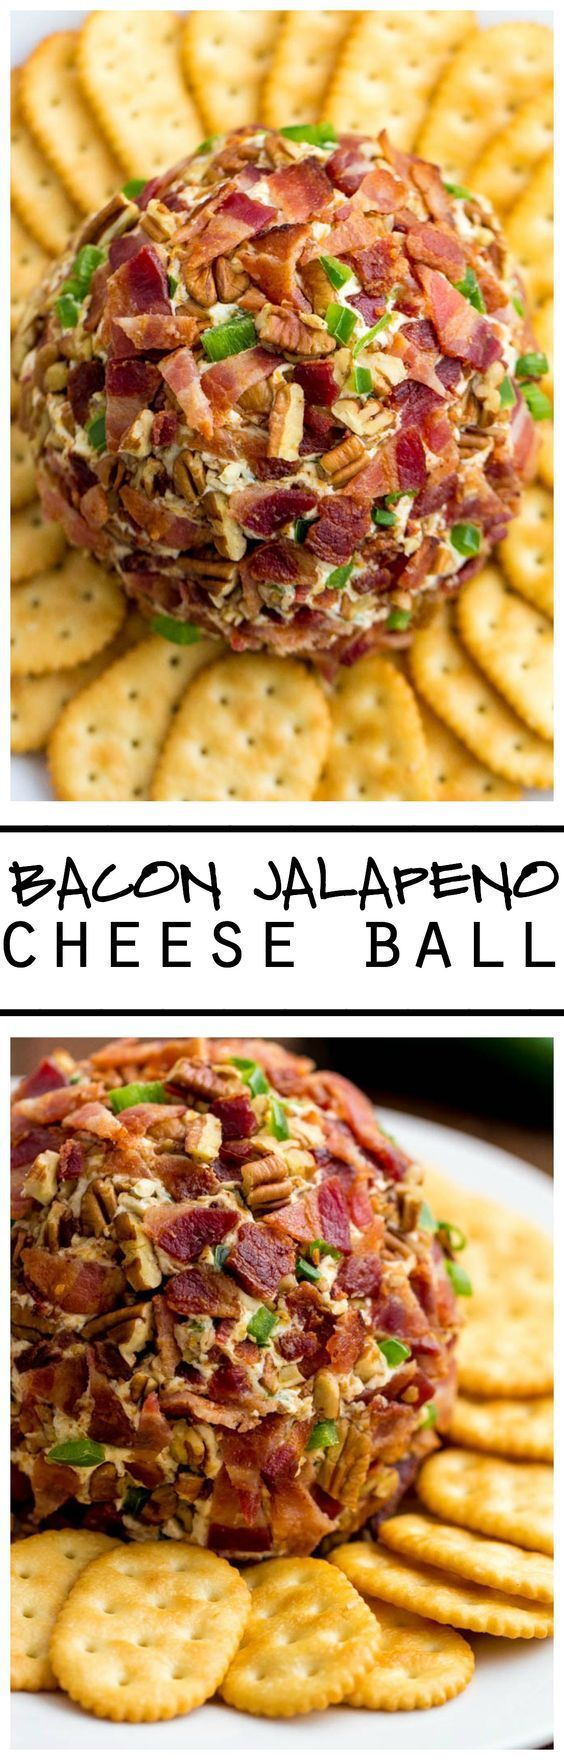 This Bacon Jalapeño Cheese Ball is the BEST thing ever! Loaded with amazing ingredients and then coated in bacon and jalapeños this is a crowd pleaser!